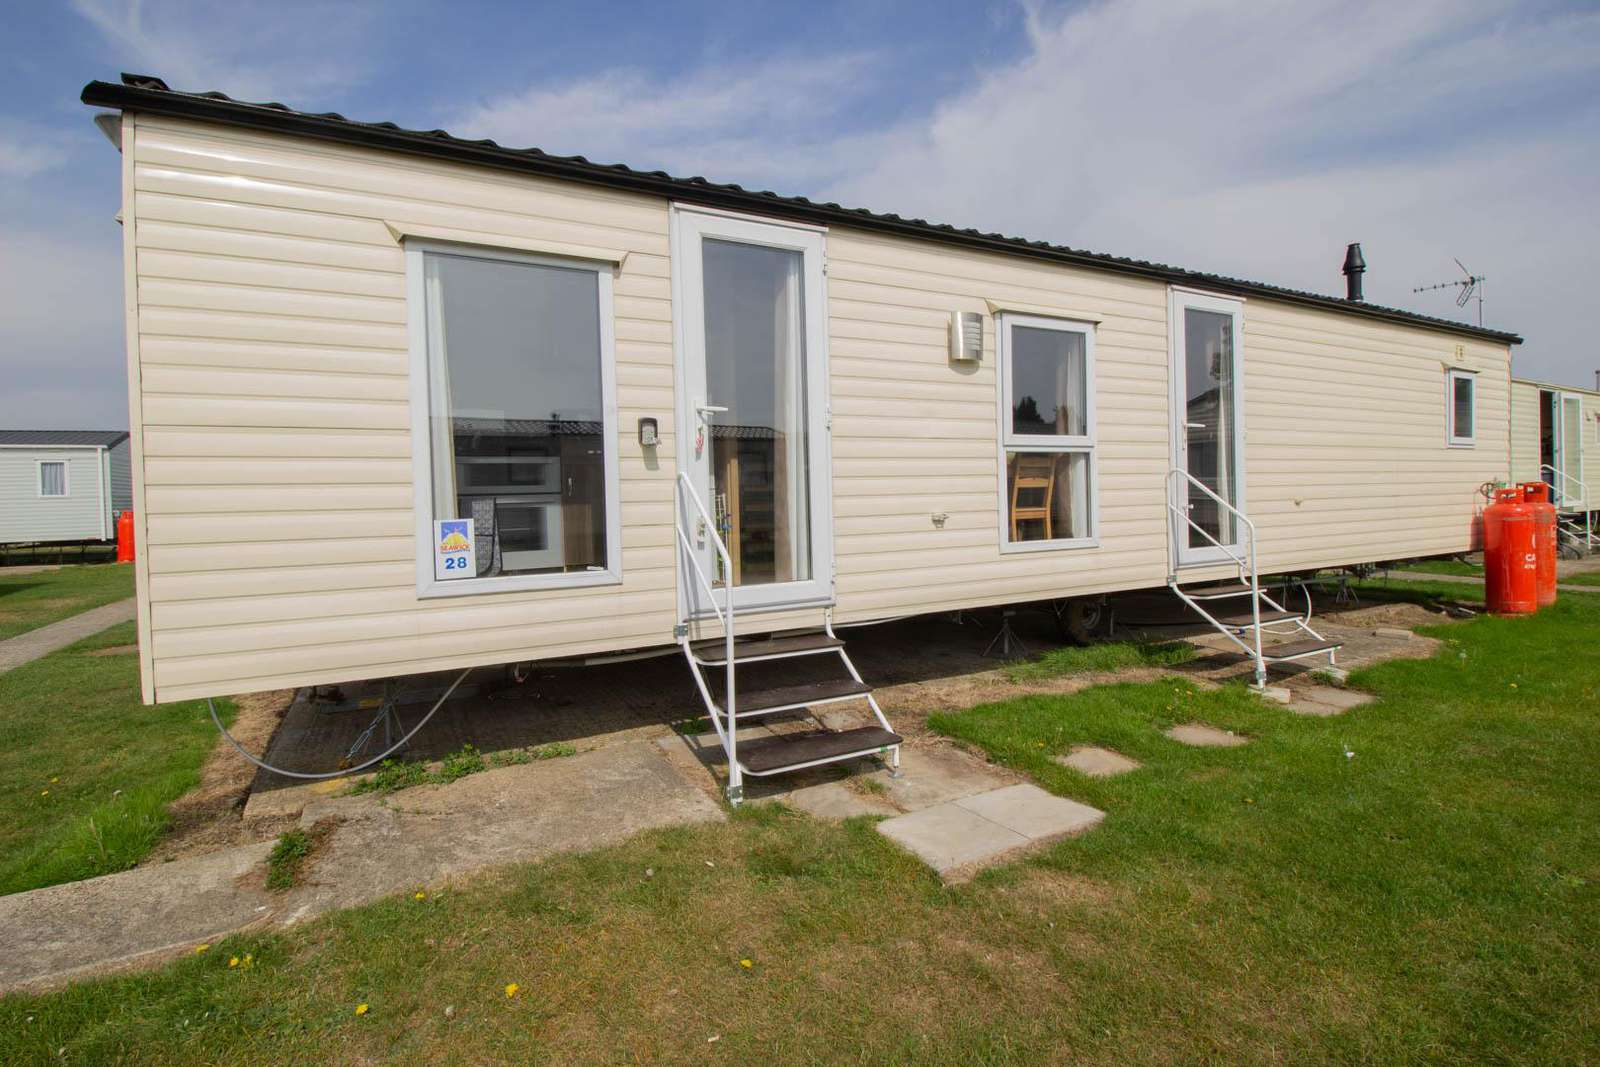 27028S – Seawick, 3 bed, 8 berth caravan with D/G & C/H. Ruby rated. - property